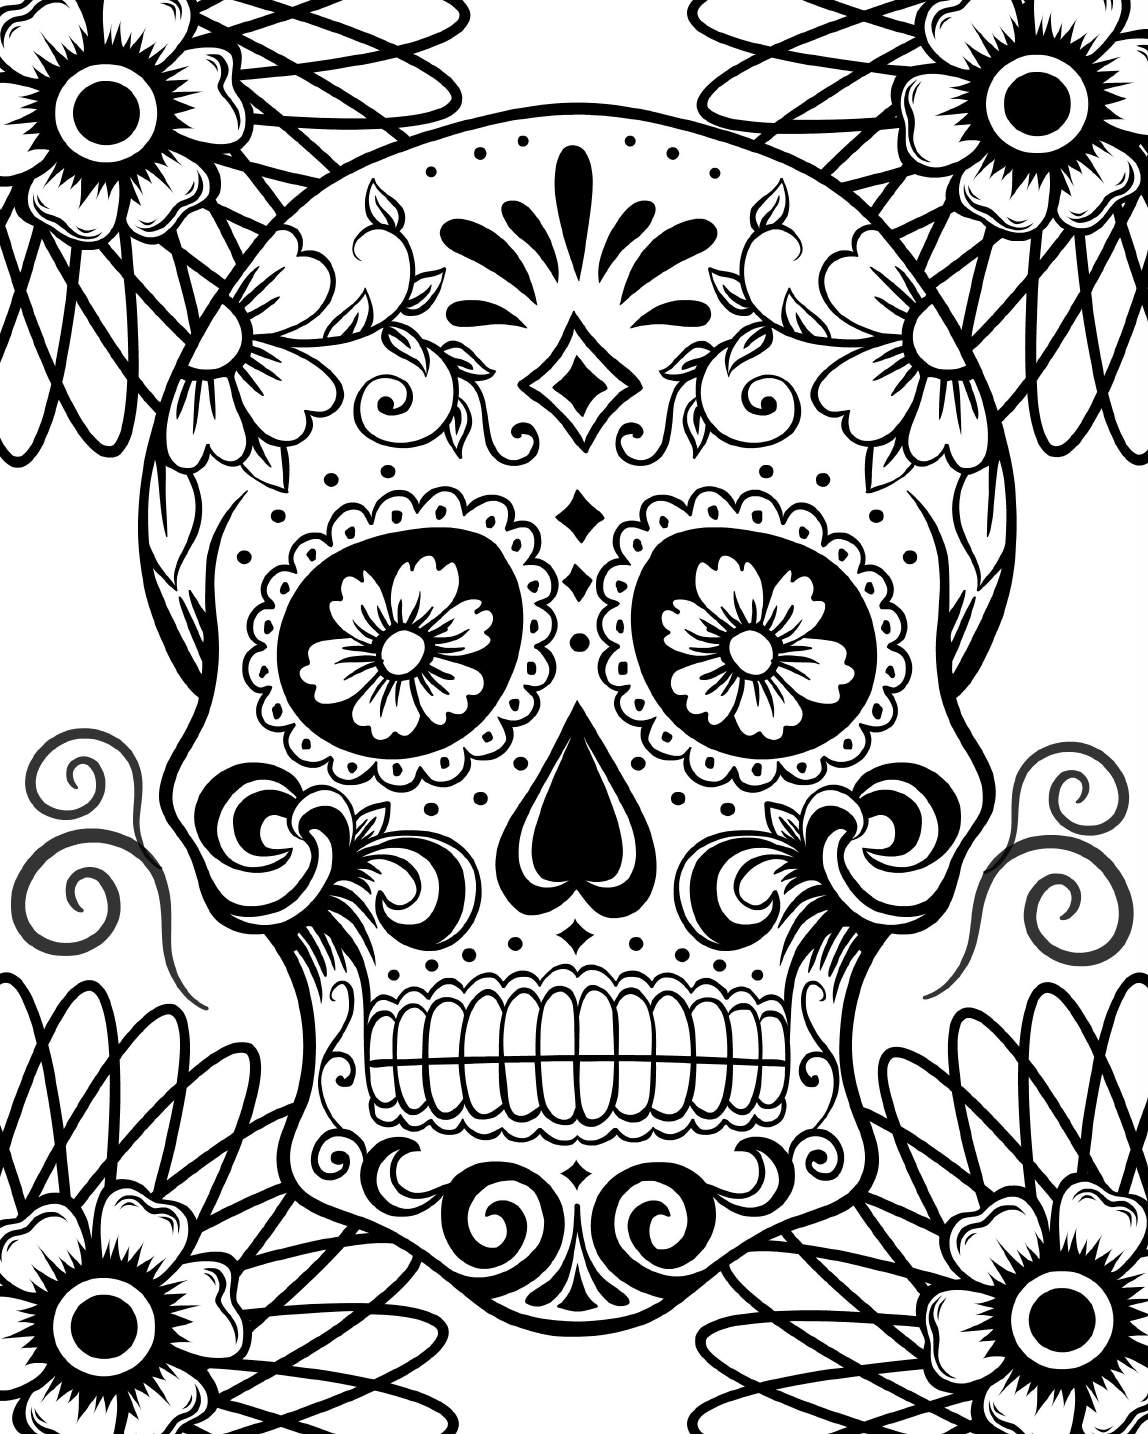 Day of the dead coloring page